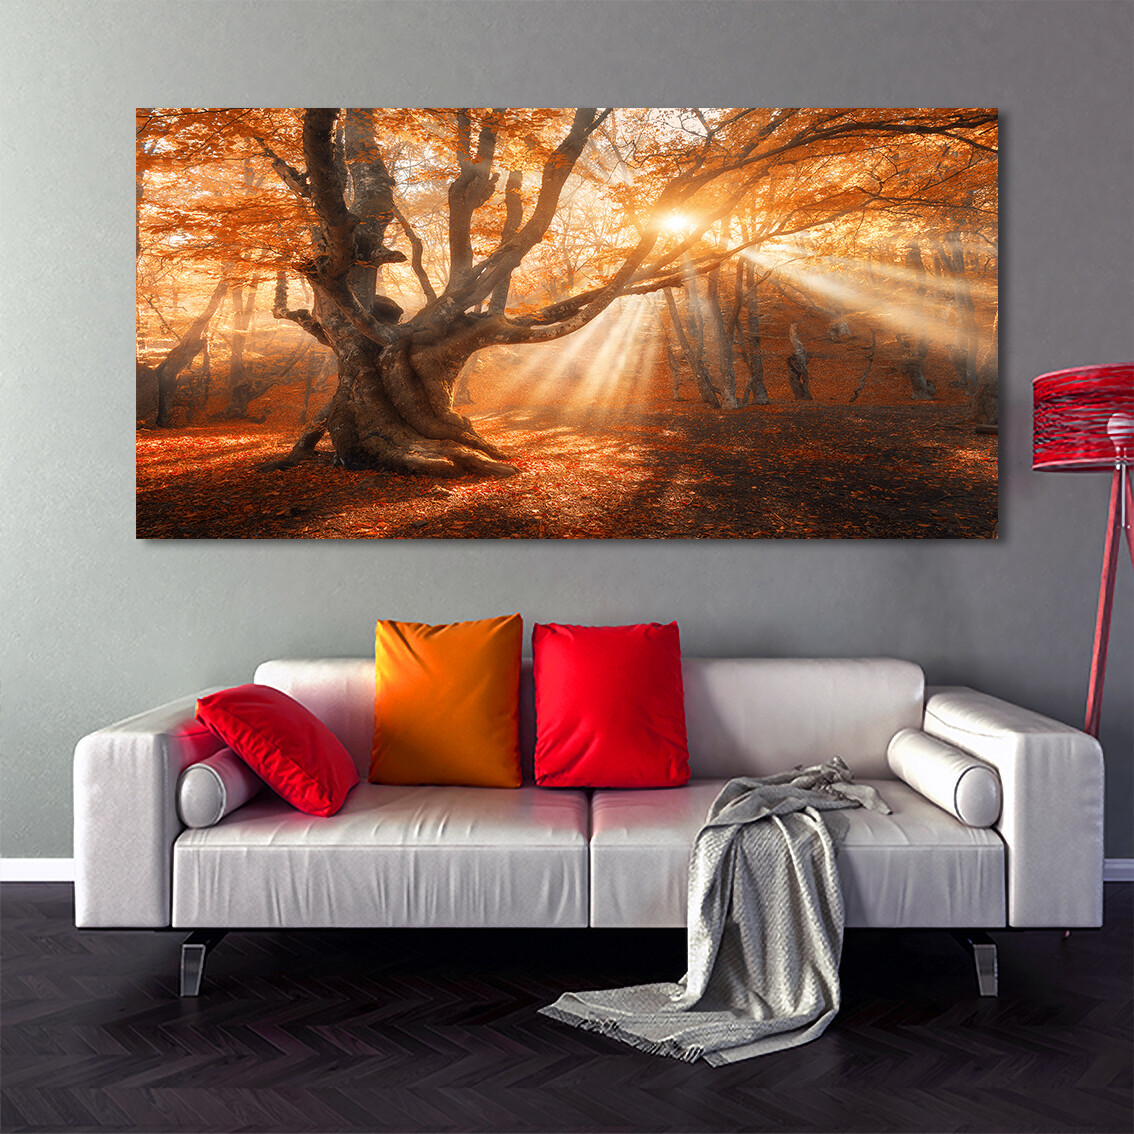 Autumn Forest - Modern Luxury Wall art Printed on Acrylic Glass - Frameless and Ready to Hang